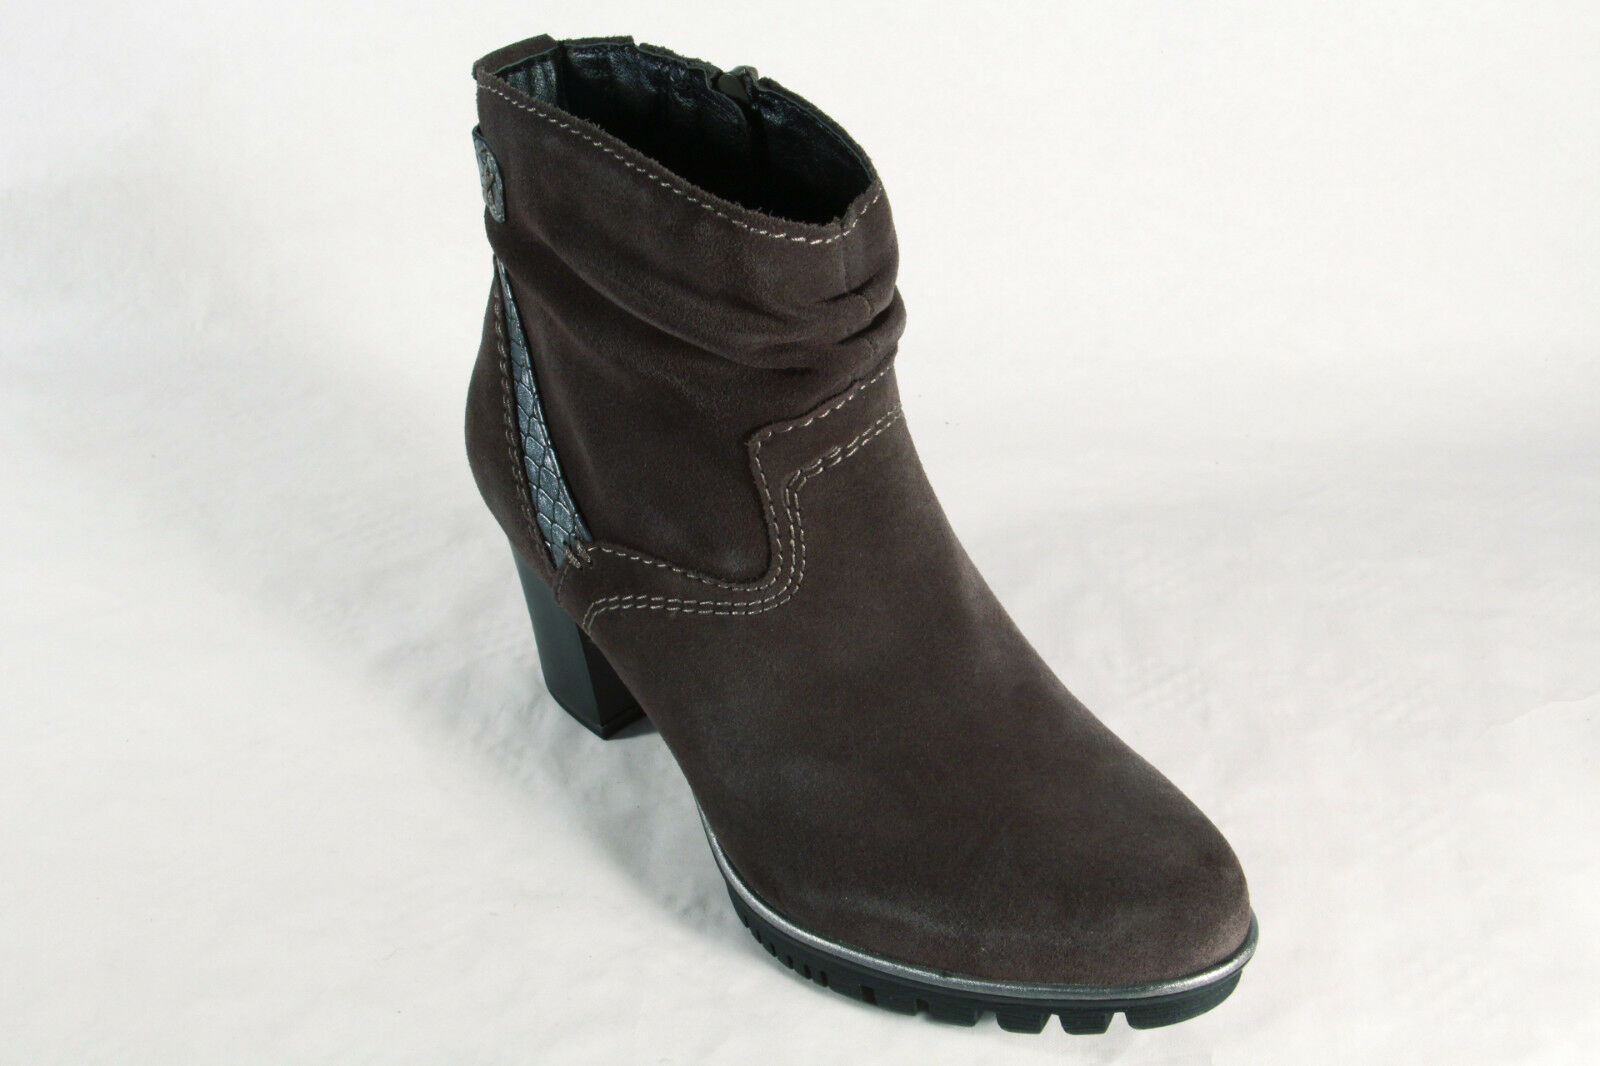 JANA Women's Boots, Ankle Ankle Ankle Boots, Boots, Real Leather Grey 25333 NEW c916d7